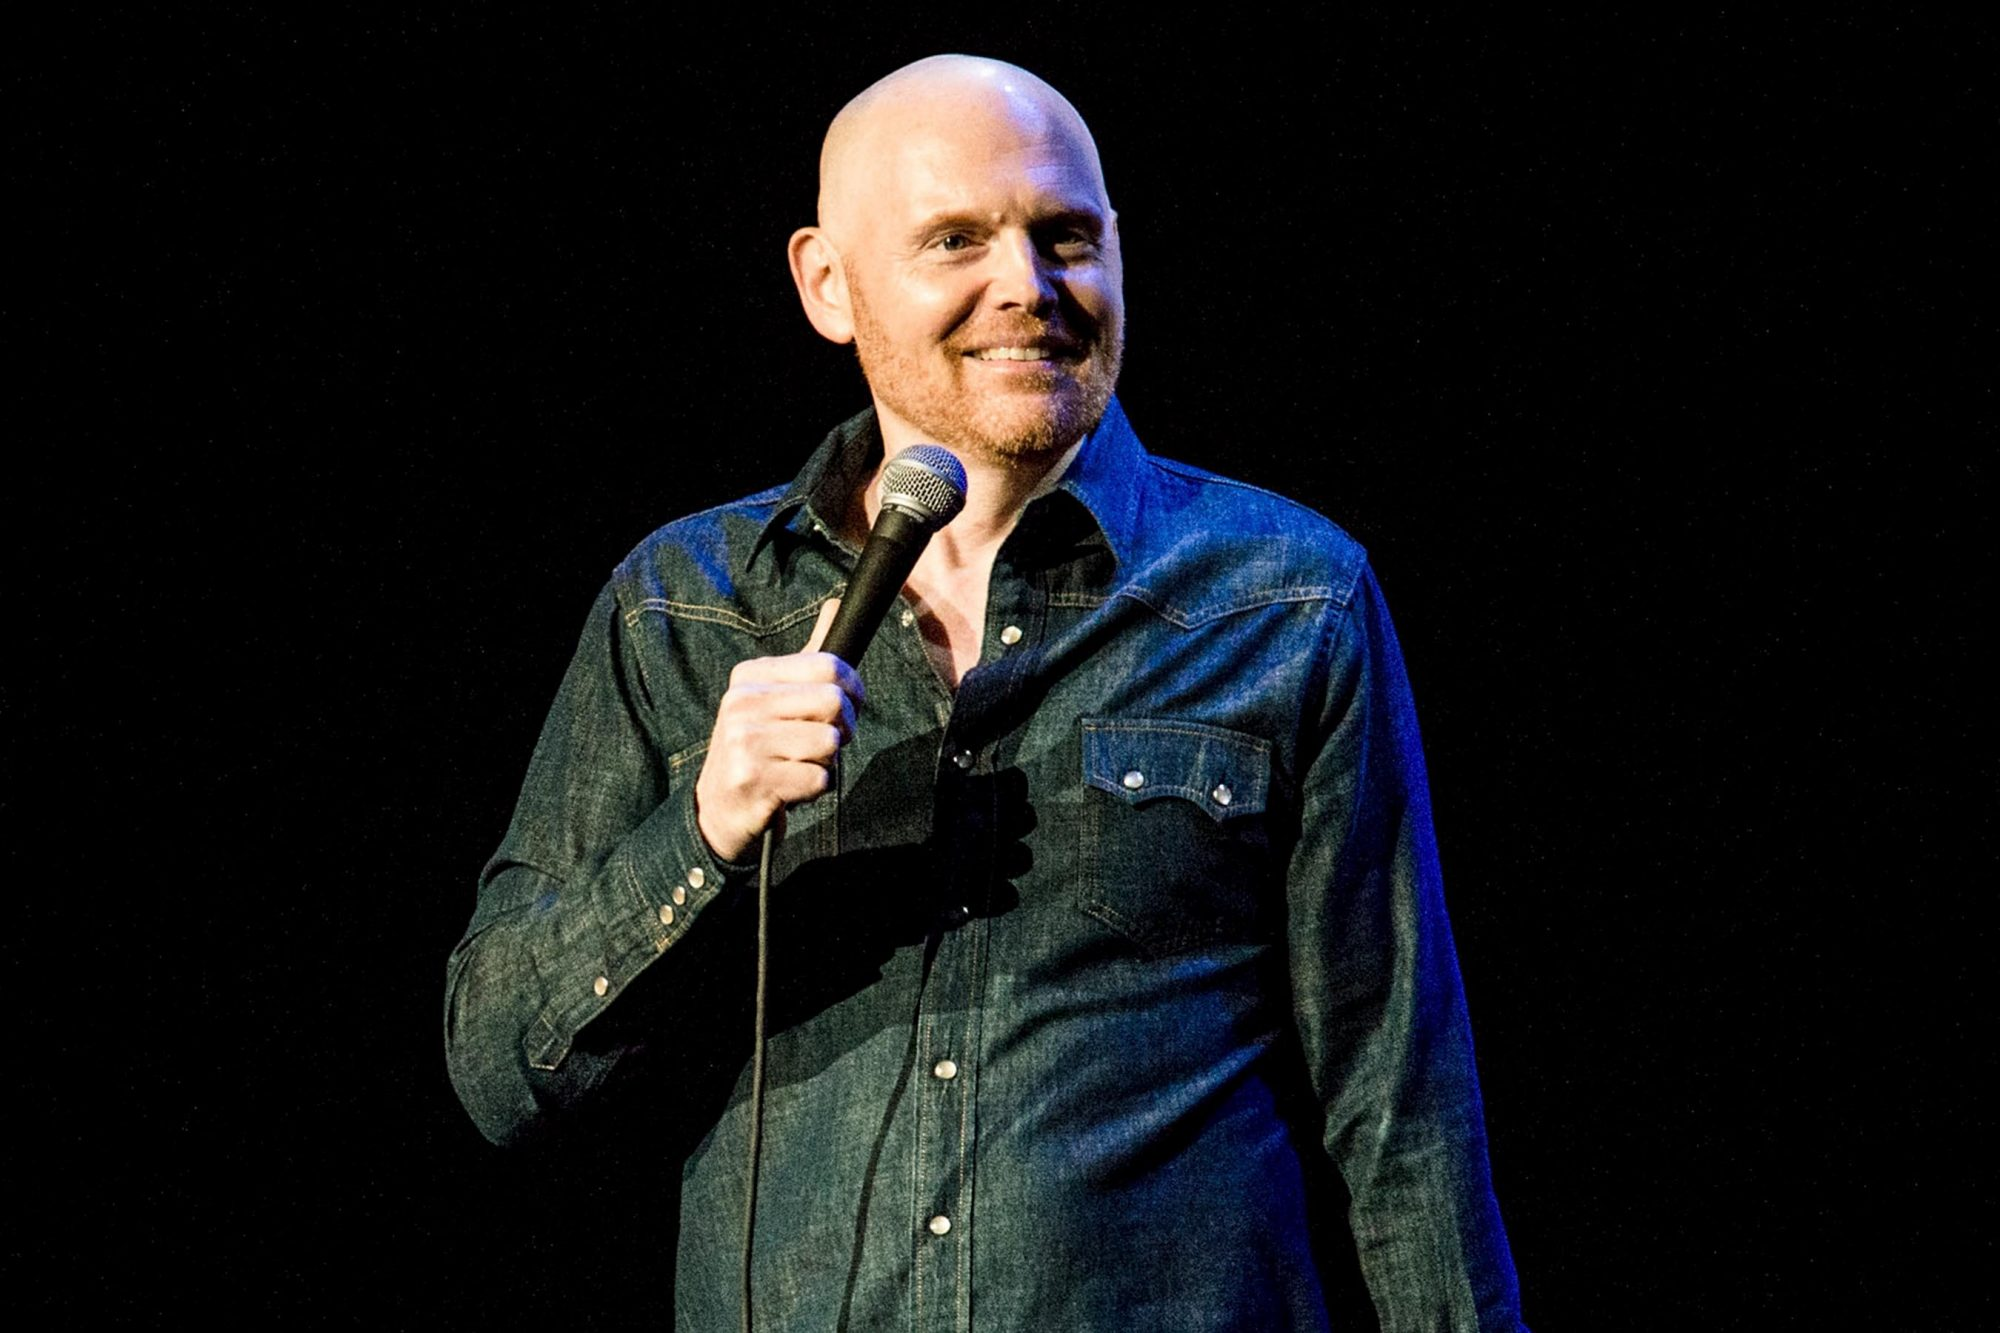 LOS ANGELES, CA - APRIL 01: Bill Burr performs during KROQ Presents Kevin & Bean's April Foolishness 2017 at The Shrine Auditorium on April 1, 2017 in Los Angeles, California. (Photo by Timothy Norris/Getty Images)